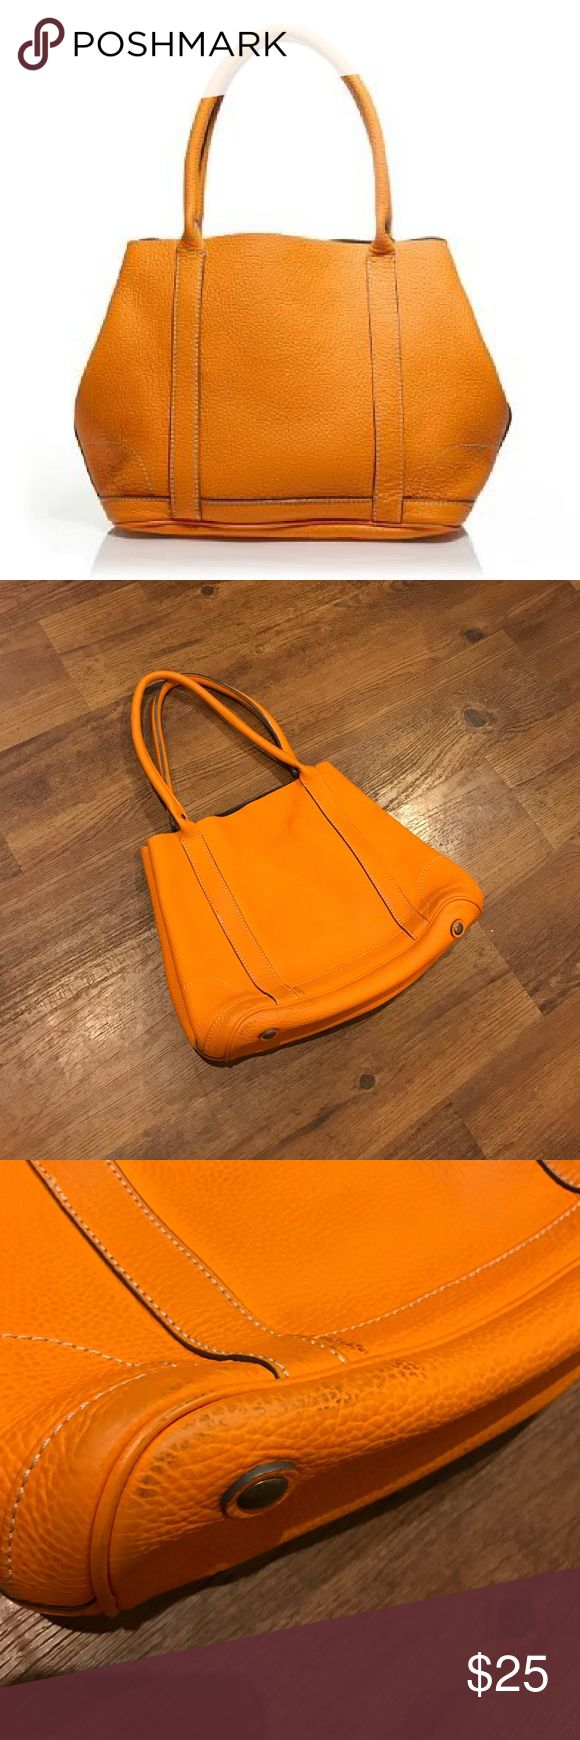 J.Crew Uptown Tote J.Crew Uptown tote in pumpkin. 100% leather. Interior pockets. Can be adjusted to a tote or an a line shape. From 2008. In used condition. Some scuffs on bottom of purse. Priced to sell immediately. J. Crew Bags